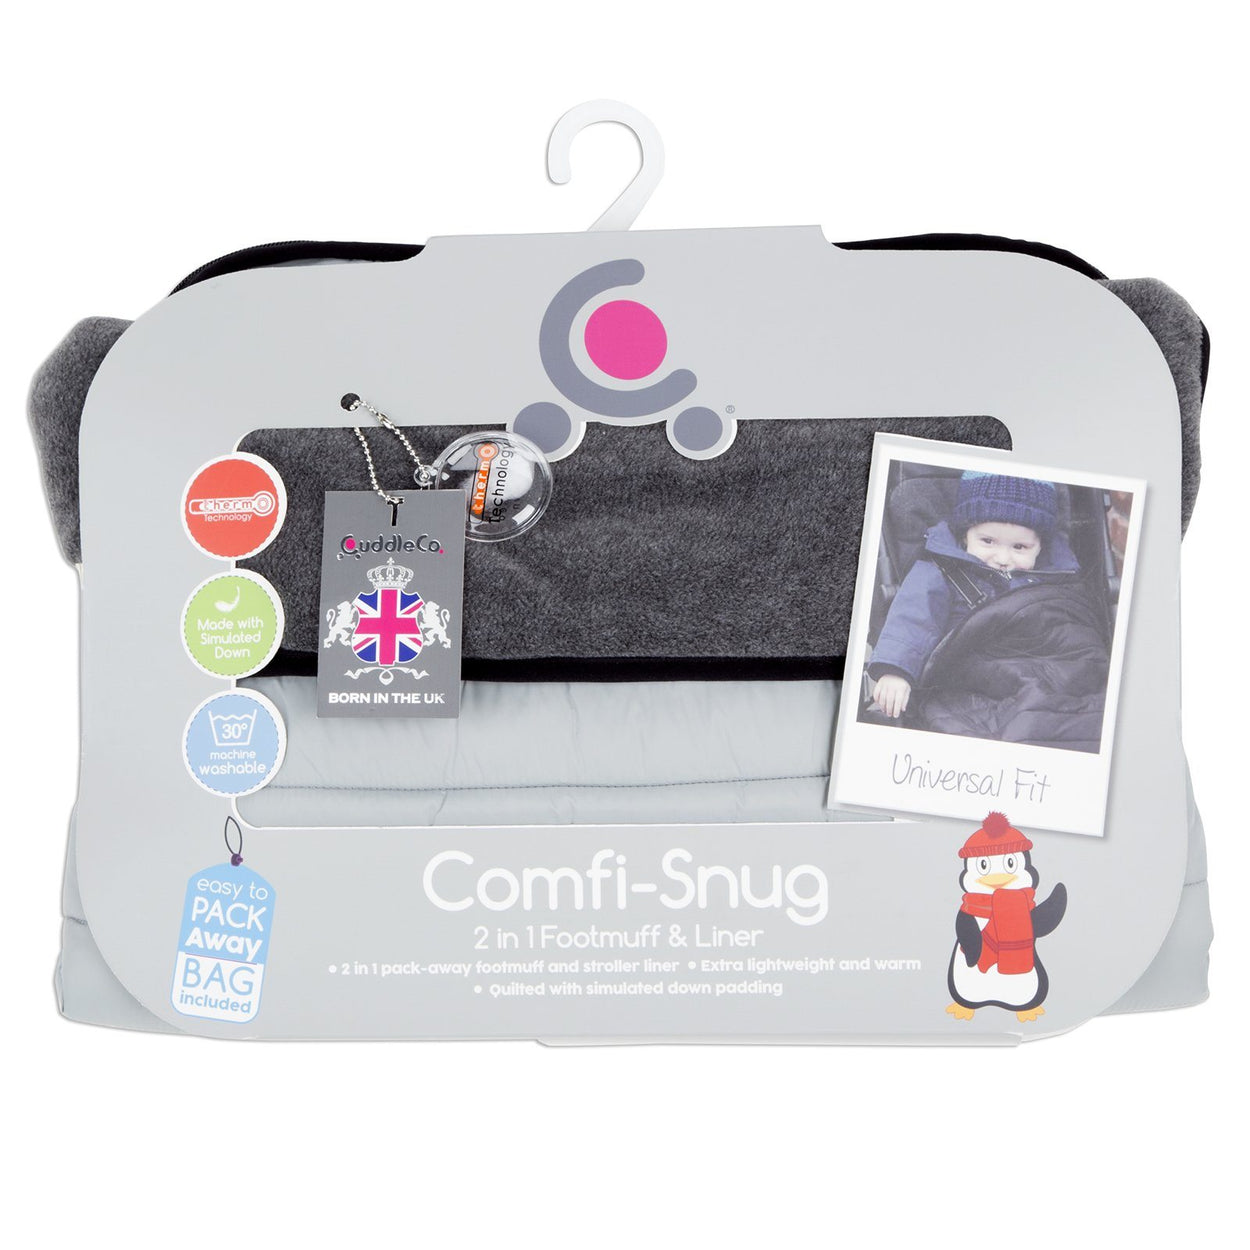 Comfi-Snug 2in1 Footmuff & Liner - Pewter On The Go cuddleco